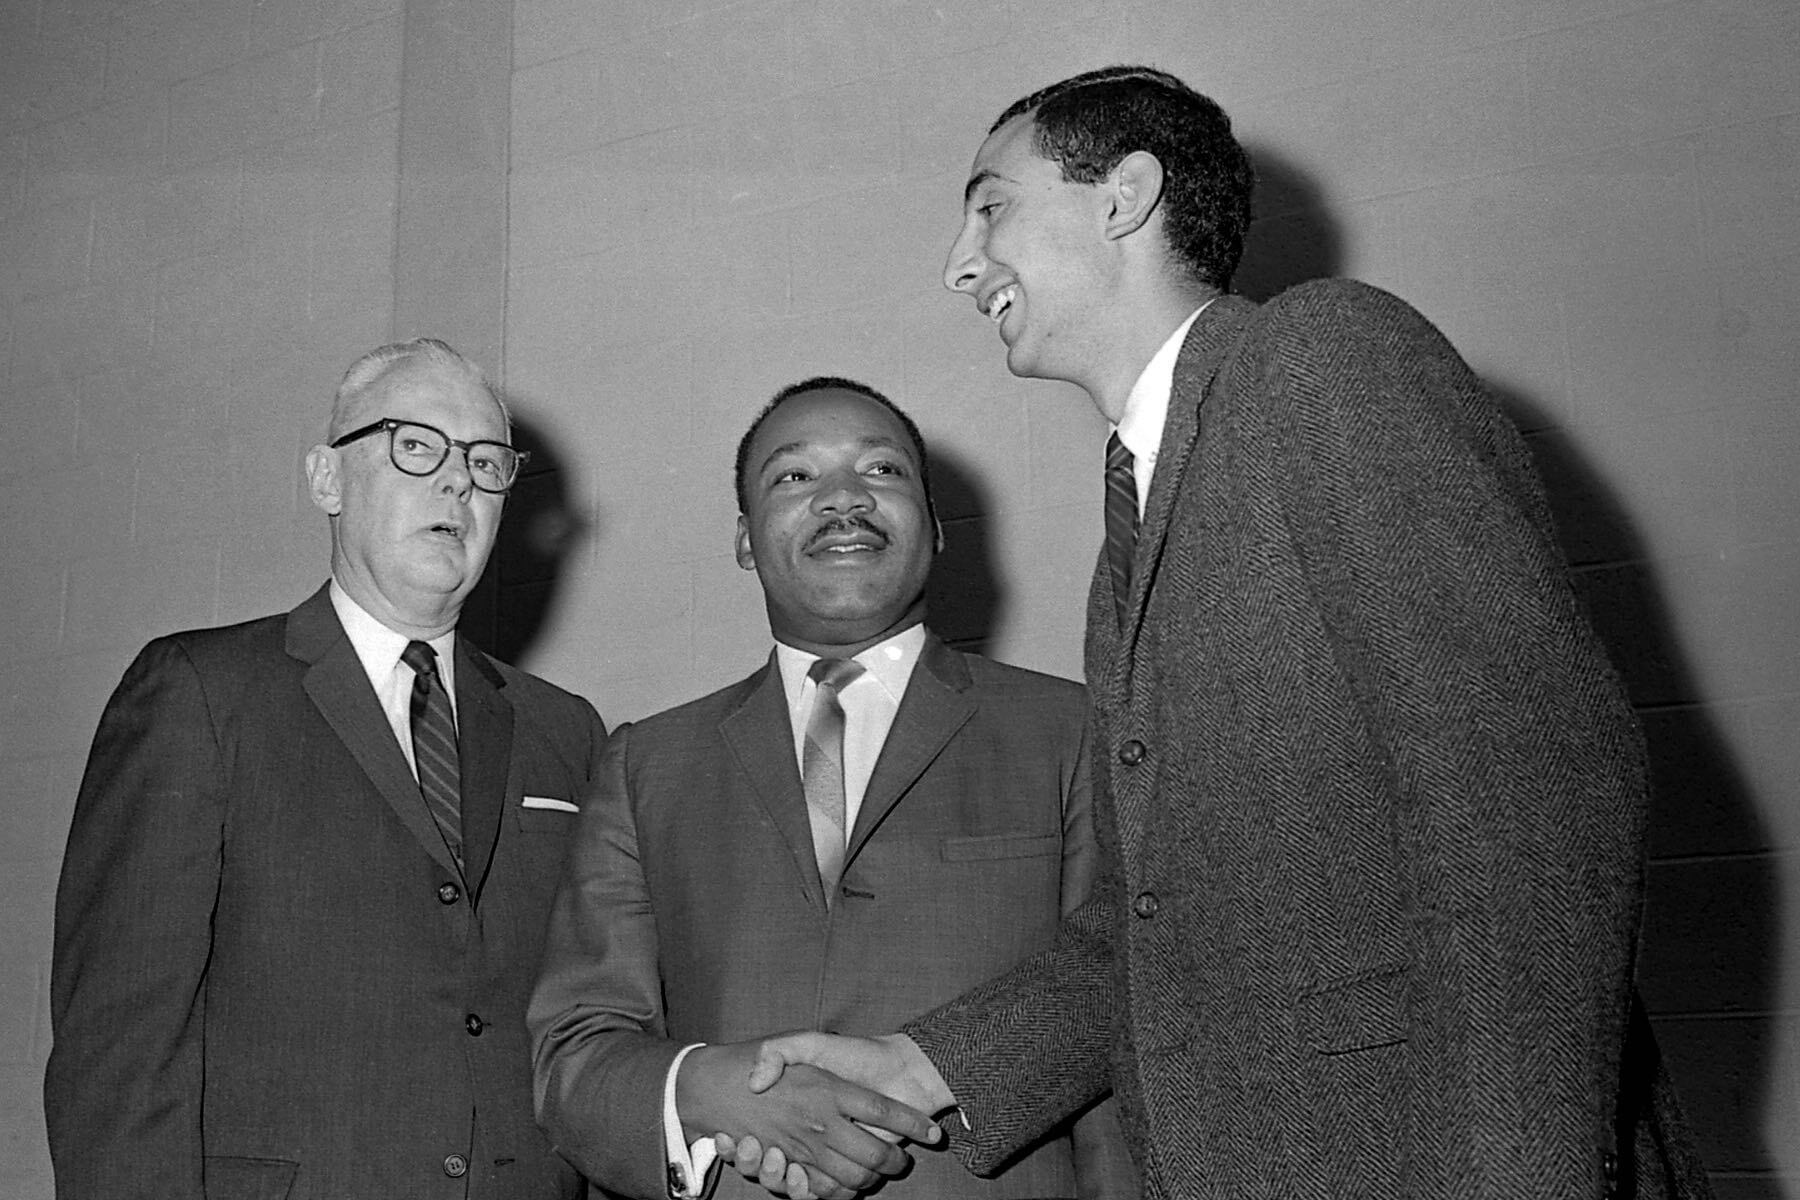 A photograph of William G. Van Note, president of Monmouth College from 1962–1971, Michael Dadd '68, president of Monmouth's student union council in 1966, and Martin Luther King Jr.